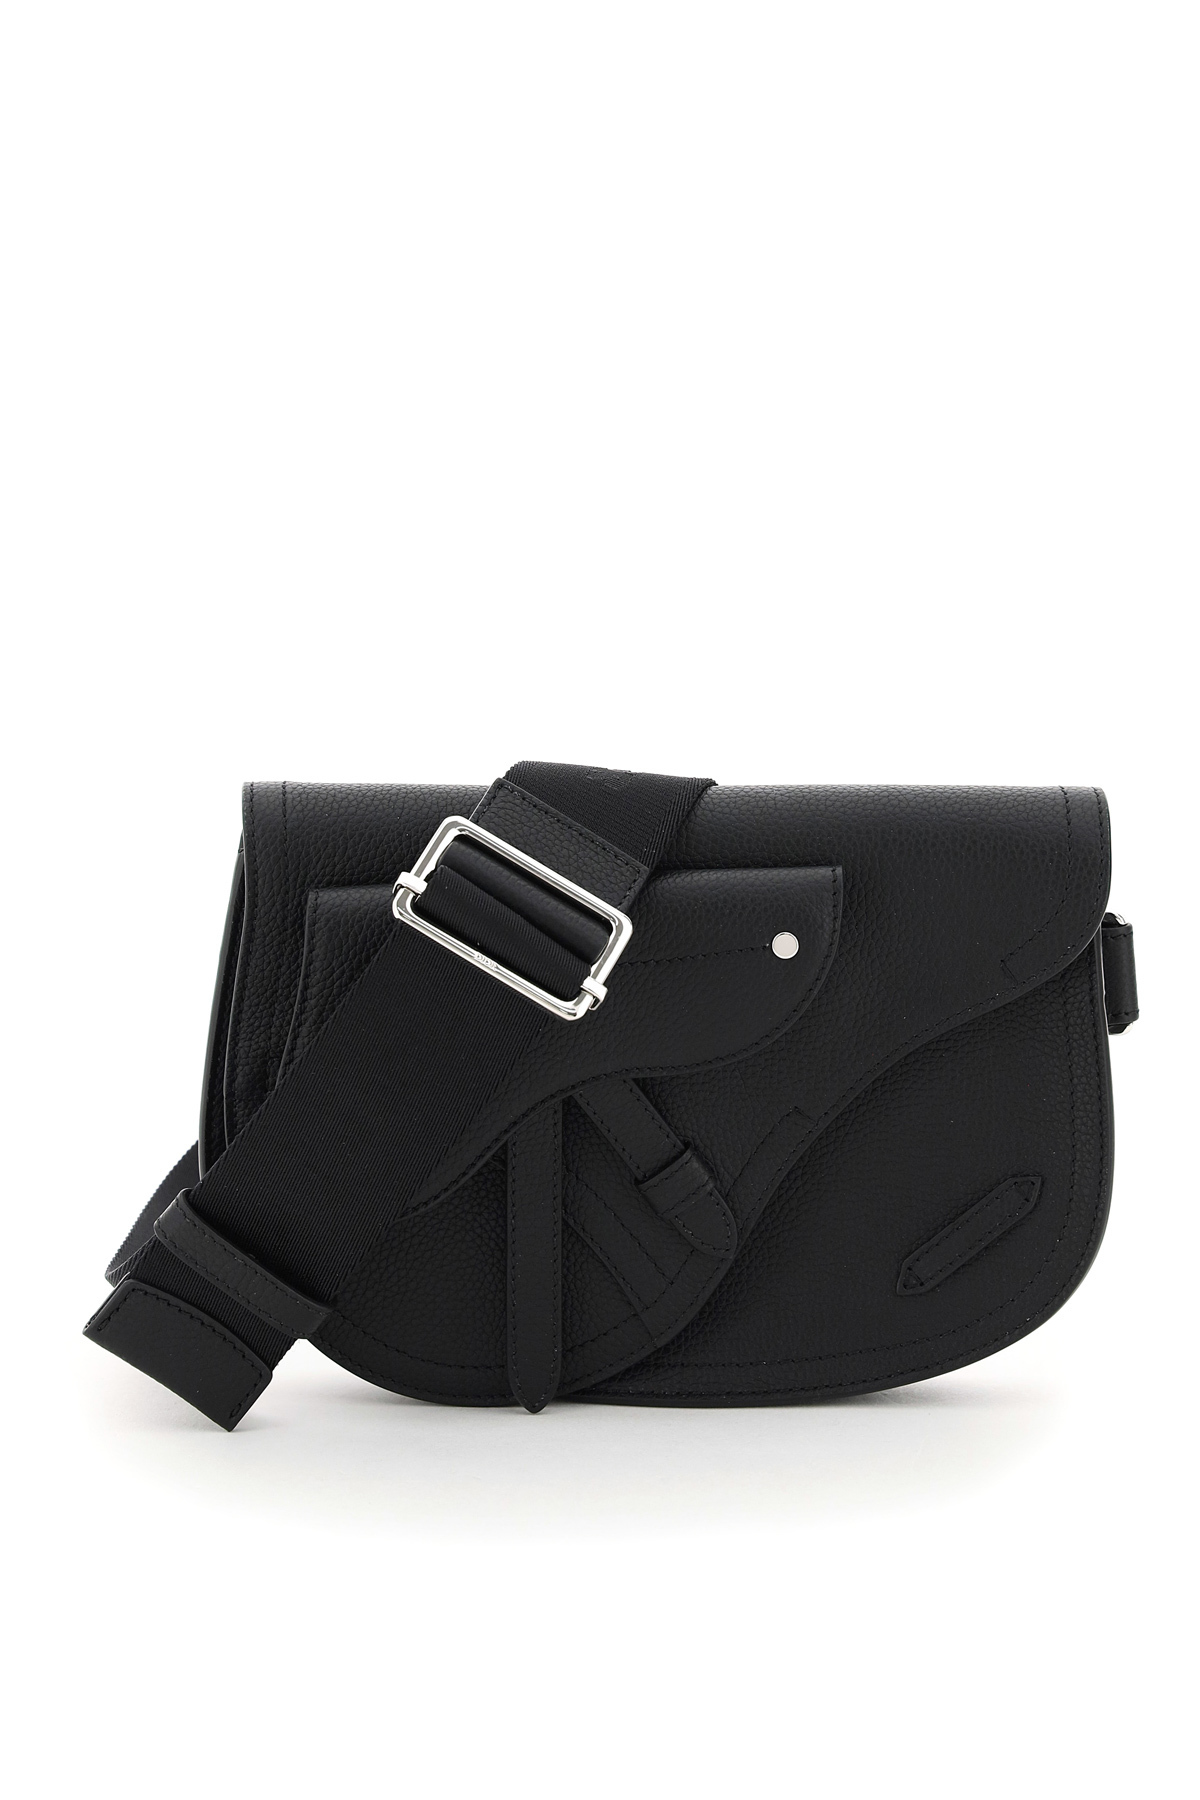 Dior pouch saddle